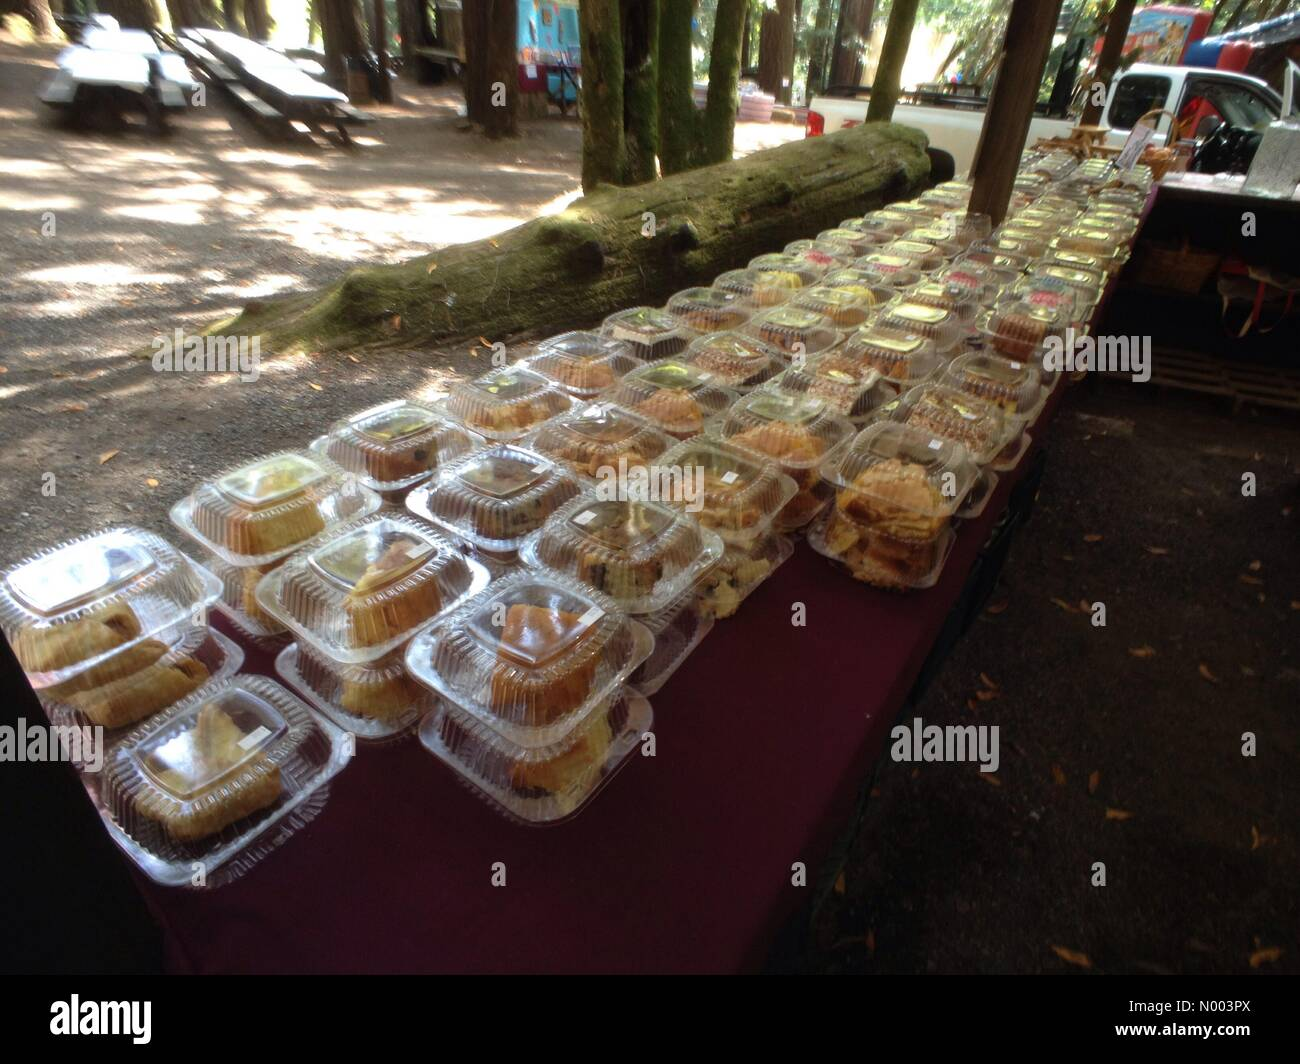 California, USA. 19th July, 2015. Desserts are stacked up and ready for sale at the annual Occidental Volunteer - Stock Image